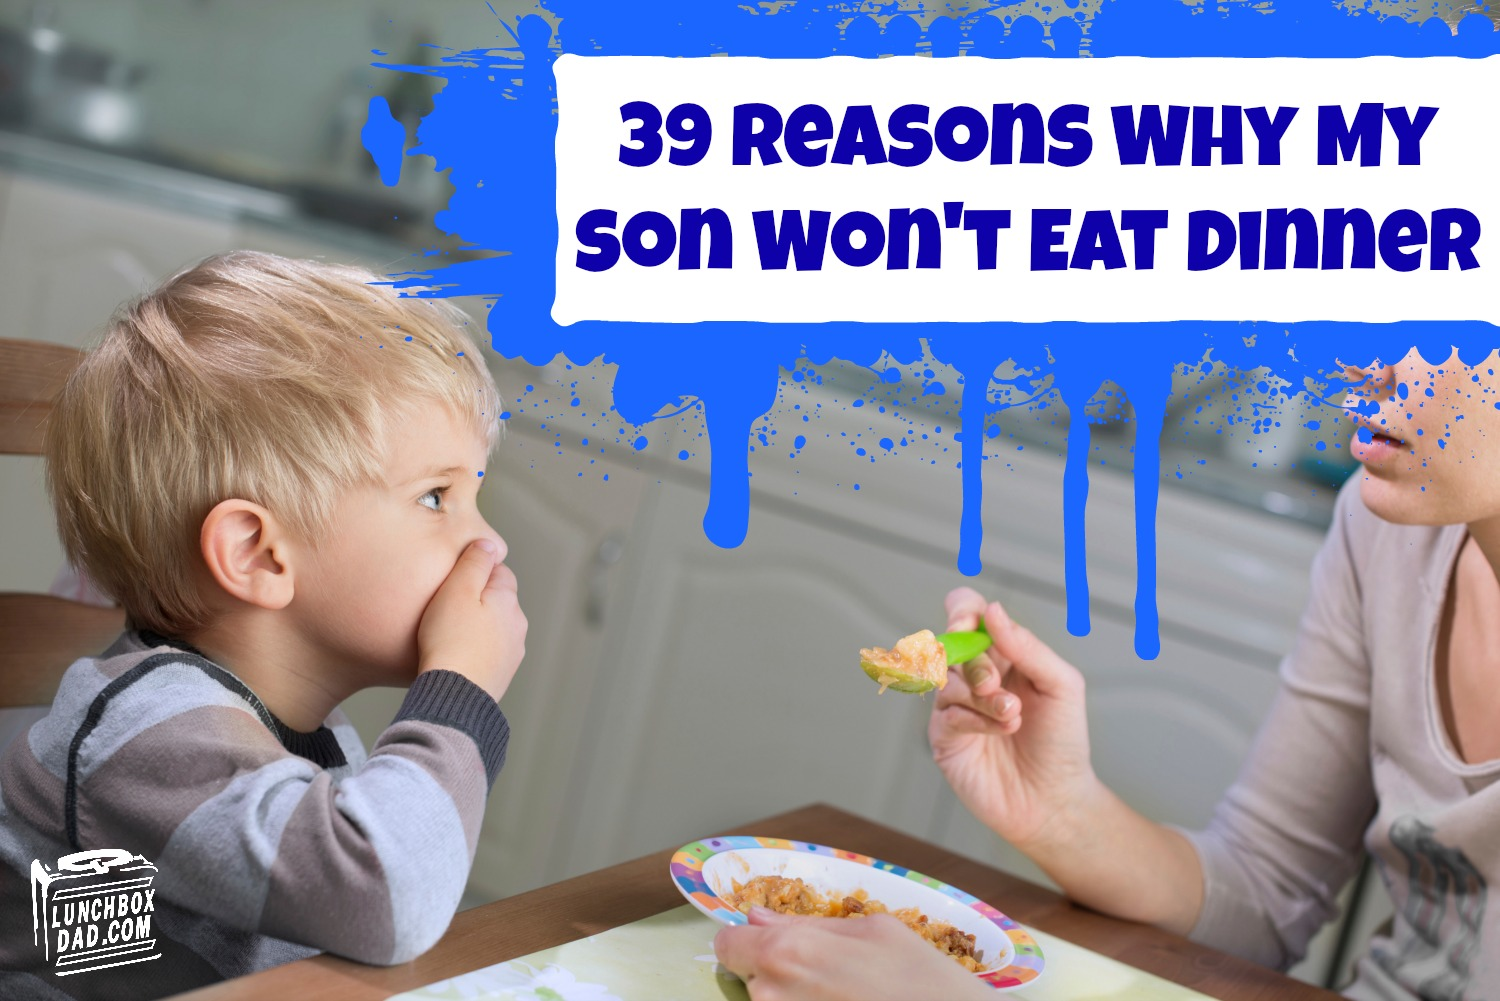 39 Reasons Why My Son Won't Eat Dinner